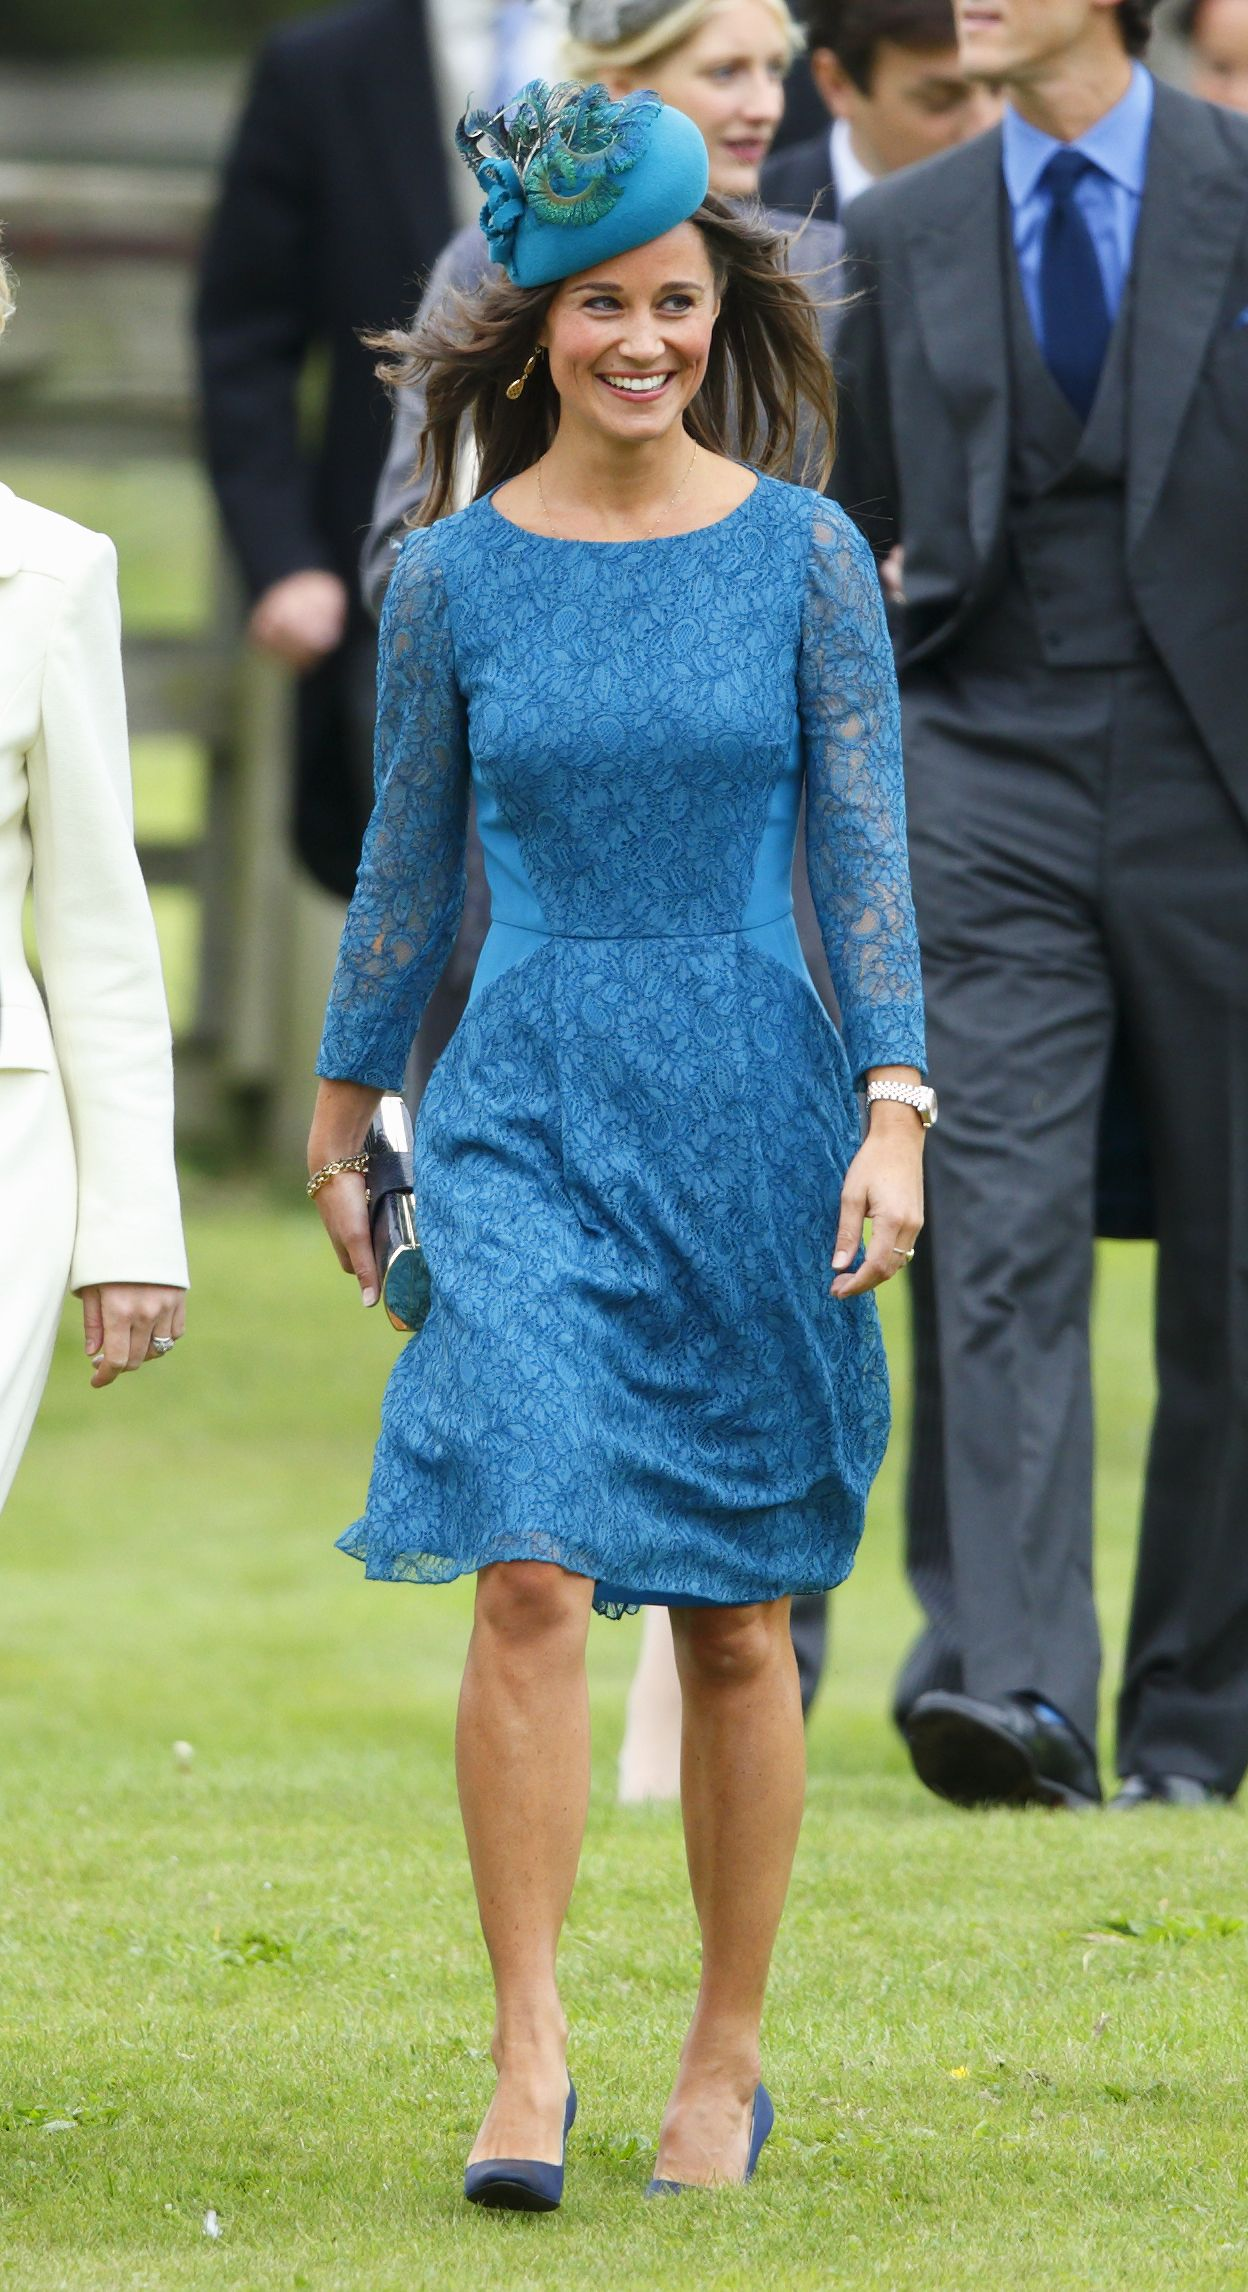 Pippa Middleton arrives at the Royal Wedding wearing a heavenly baby blue dress